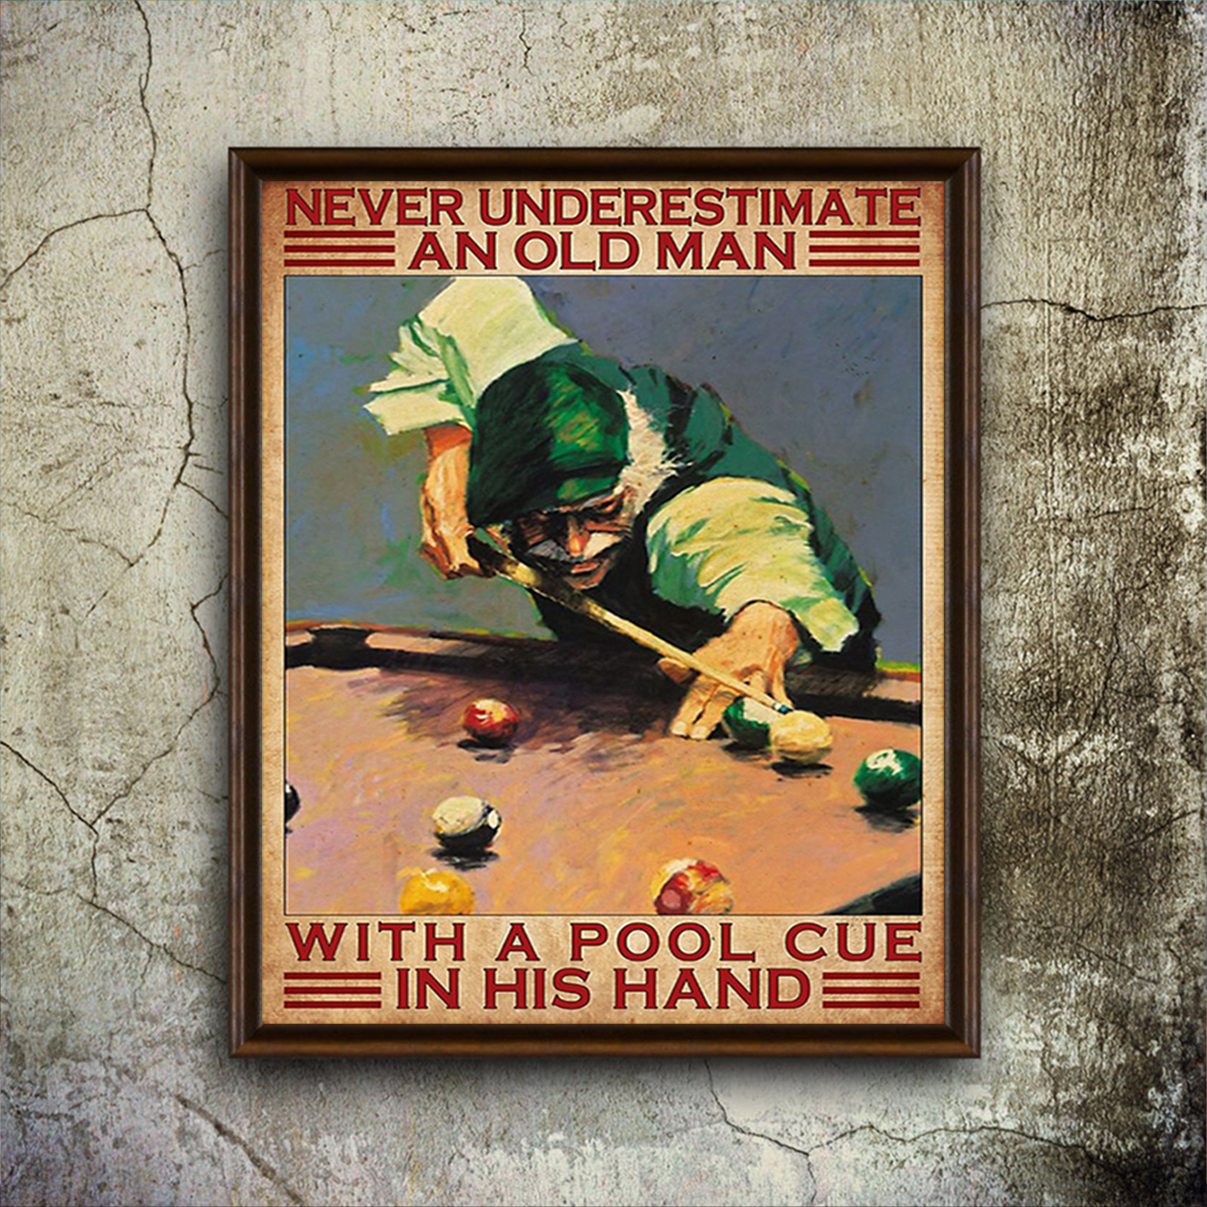 Never underestimate an old man with a pool cue in his hand poster A2